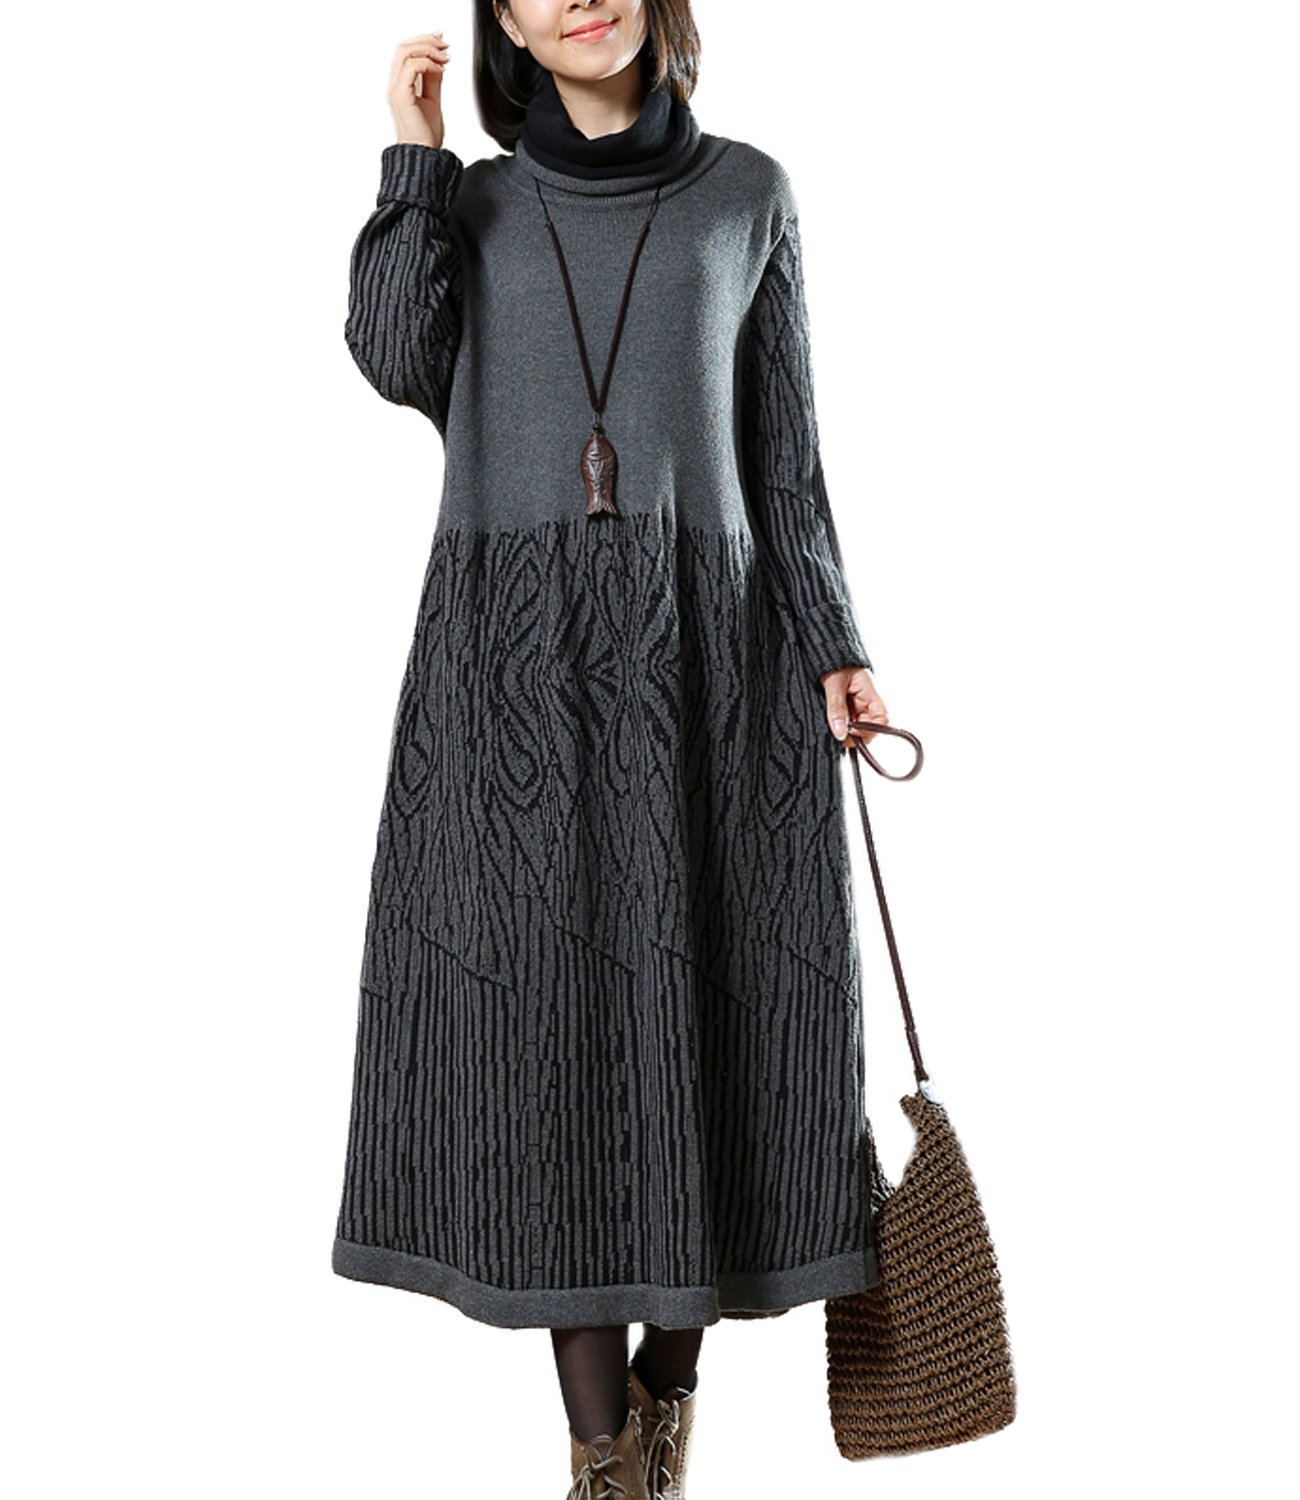 Medeshe Women Winter Turtle Neck Long Sleeve Sweater Knitted Dress (S/M/L, Grey)